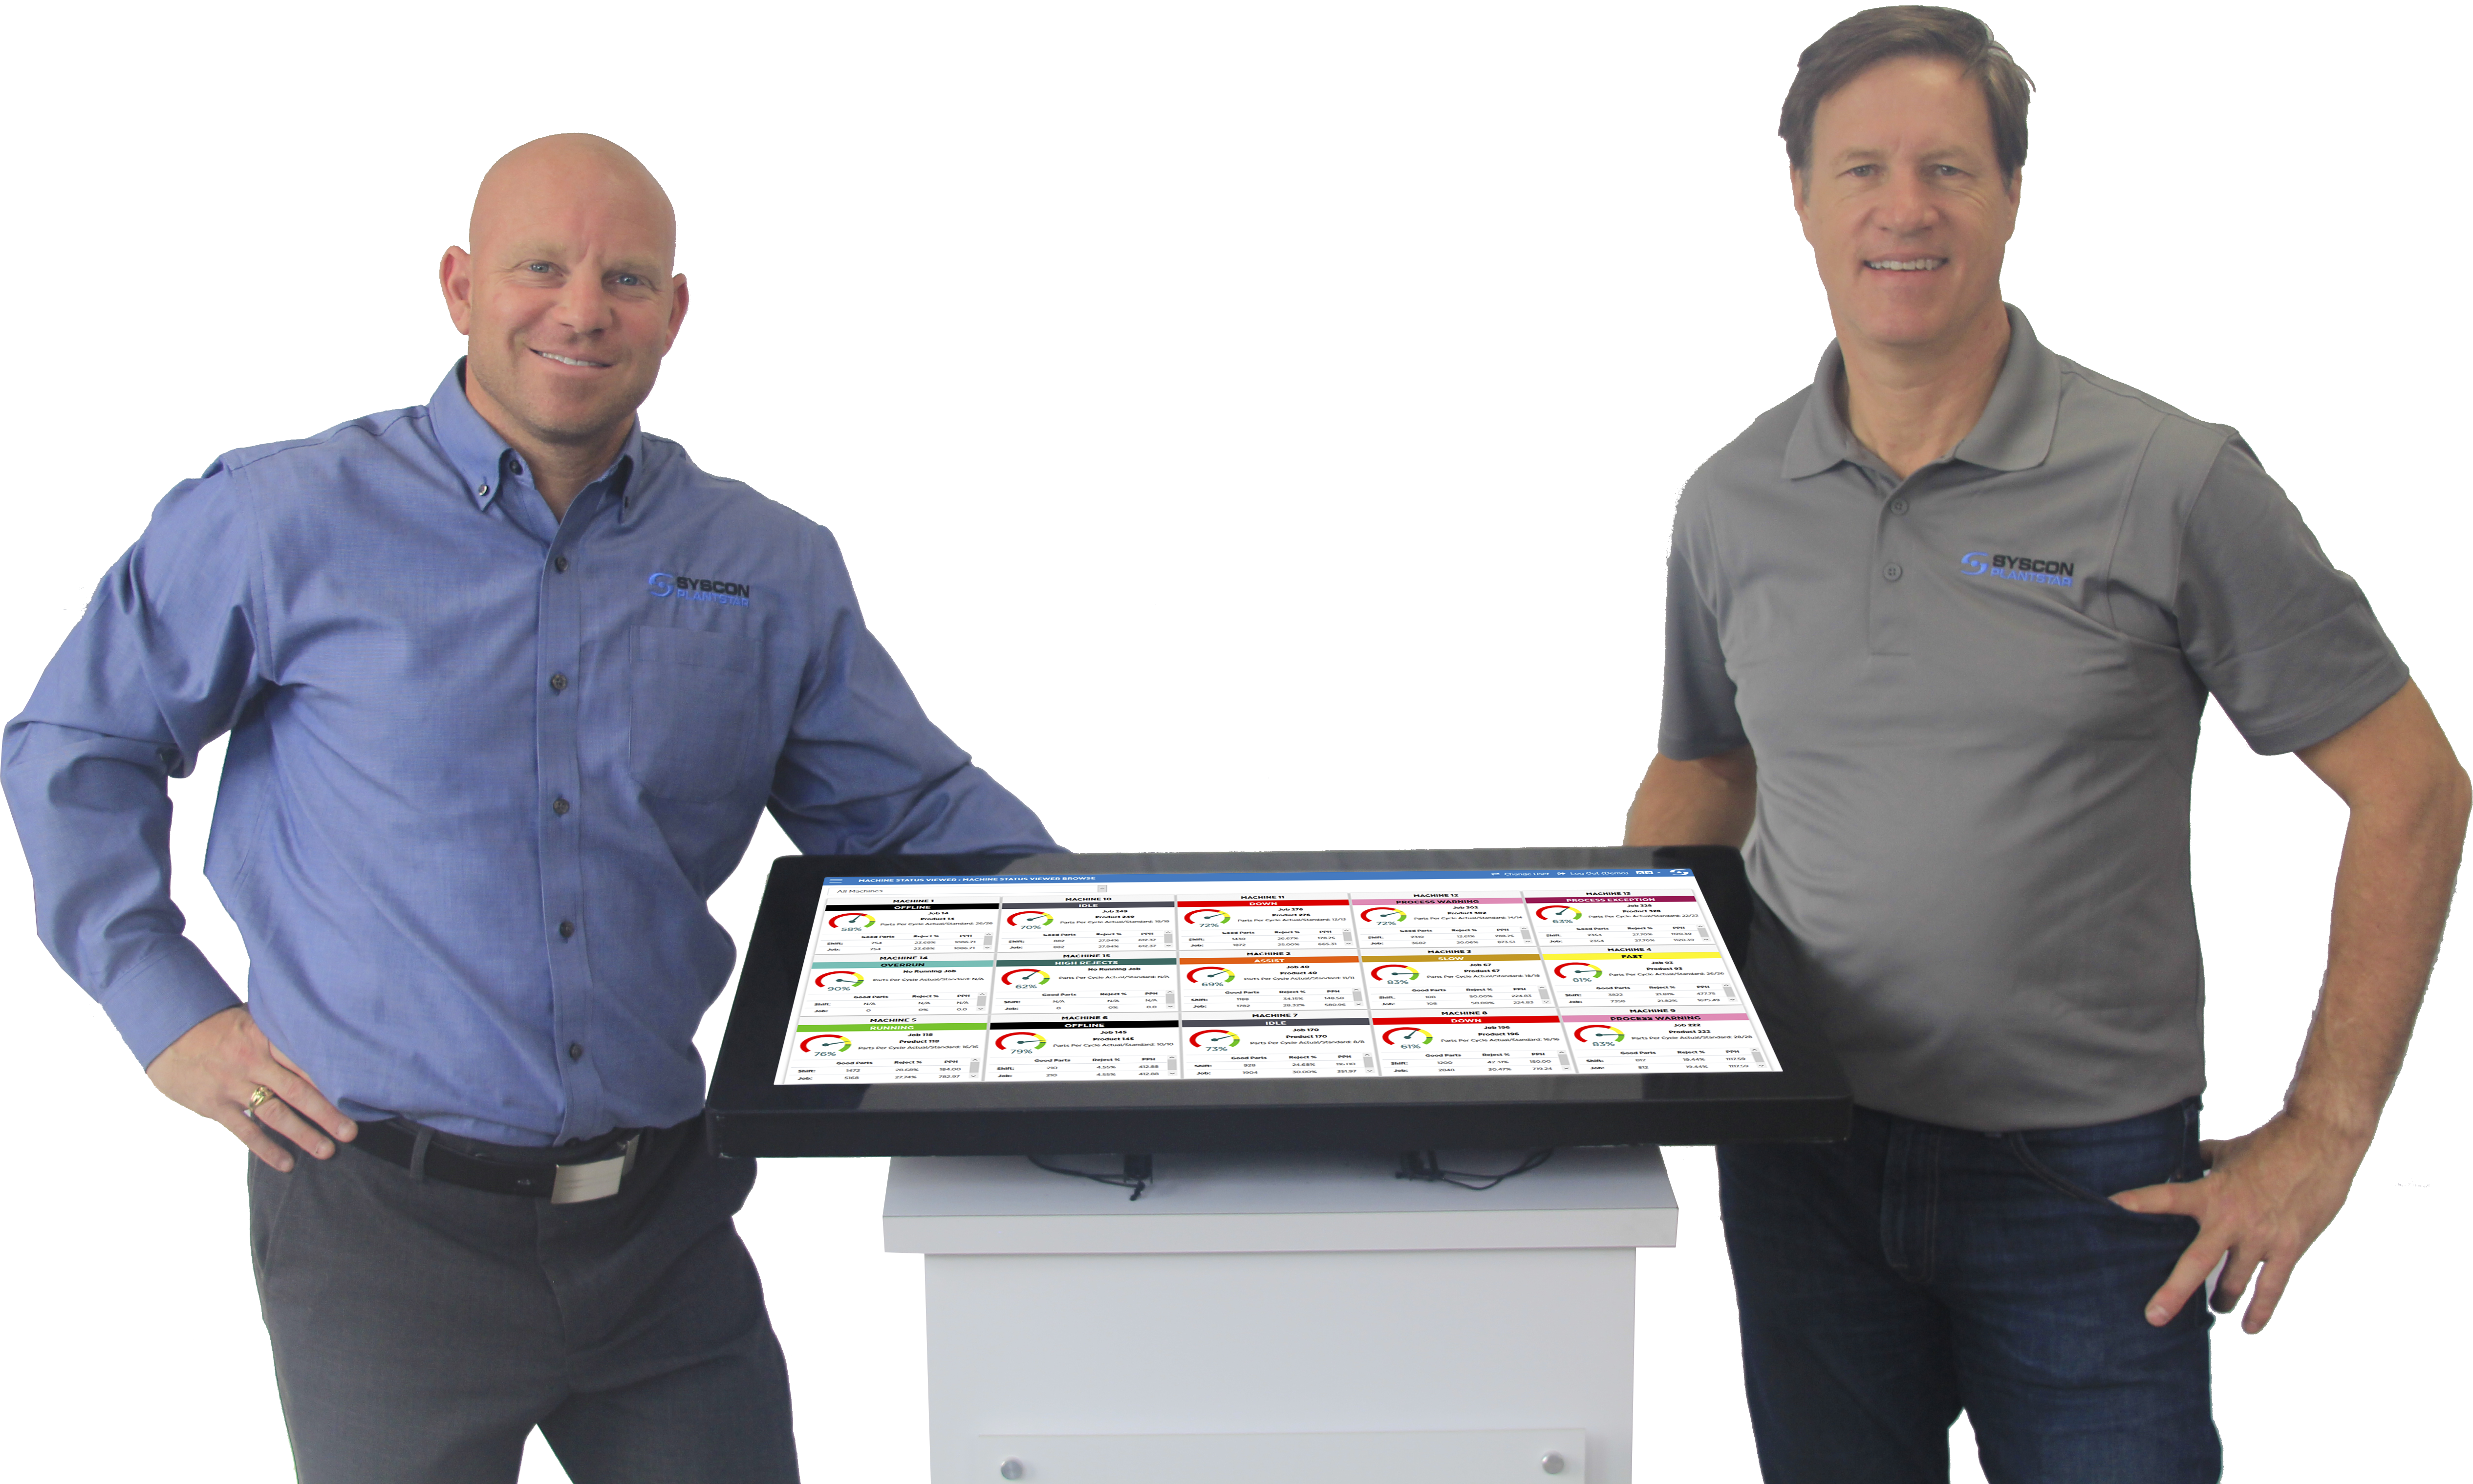 Tom and Dave with large HMI